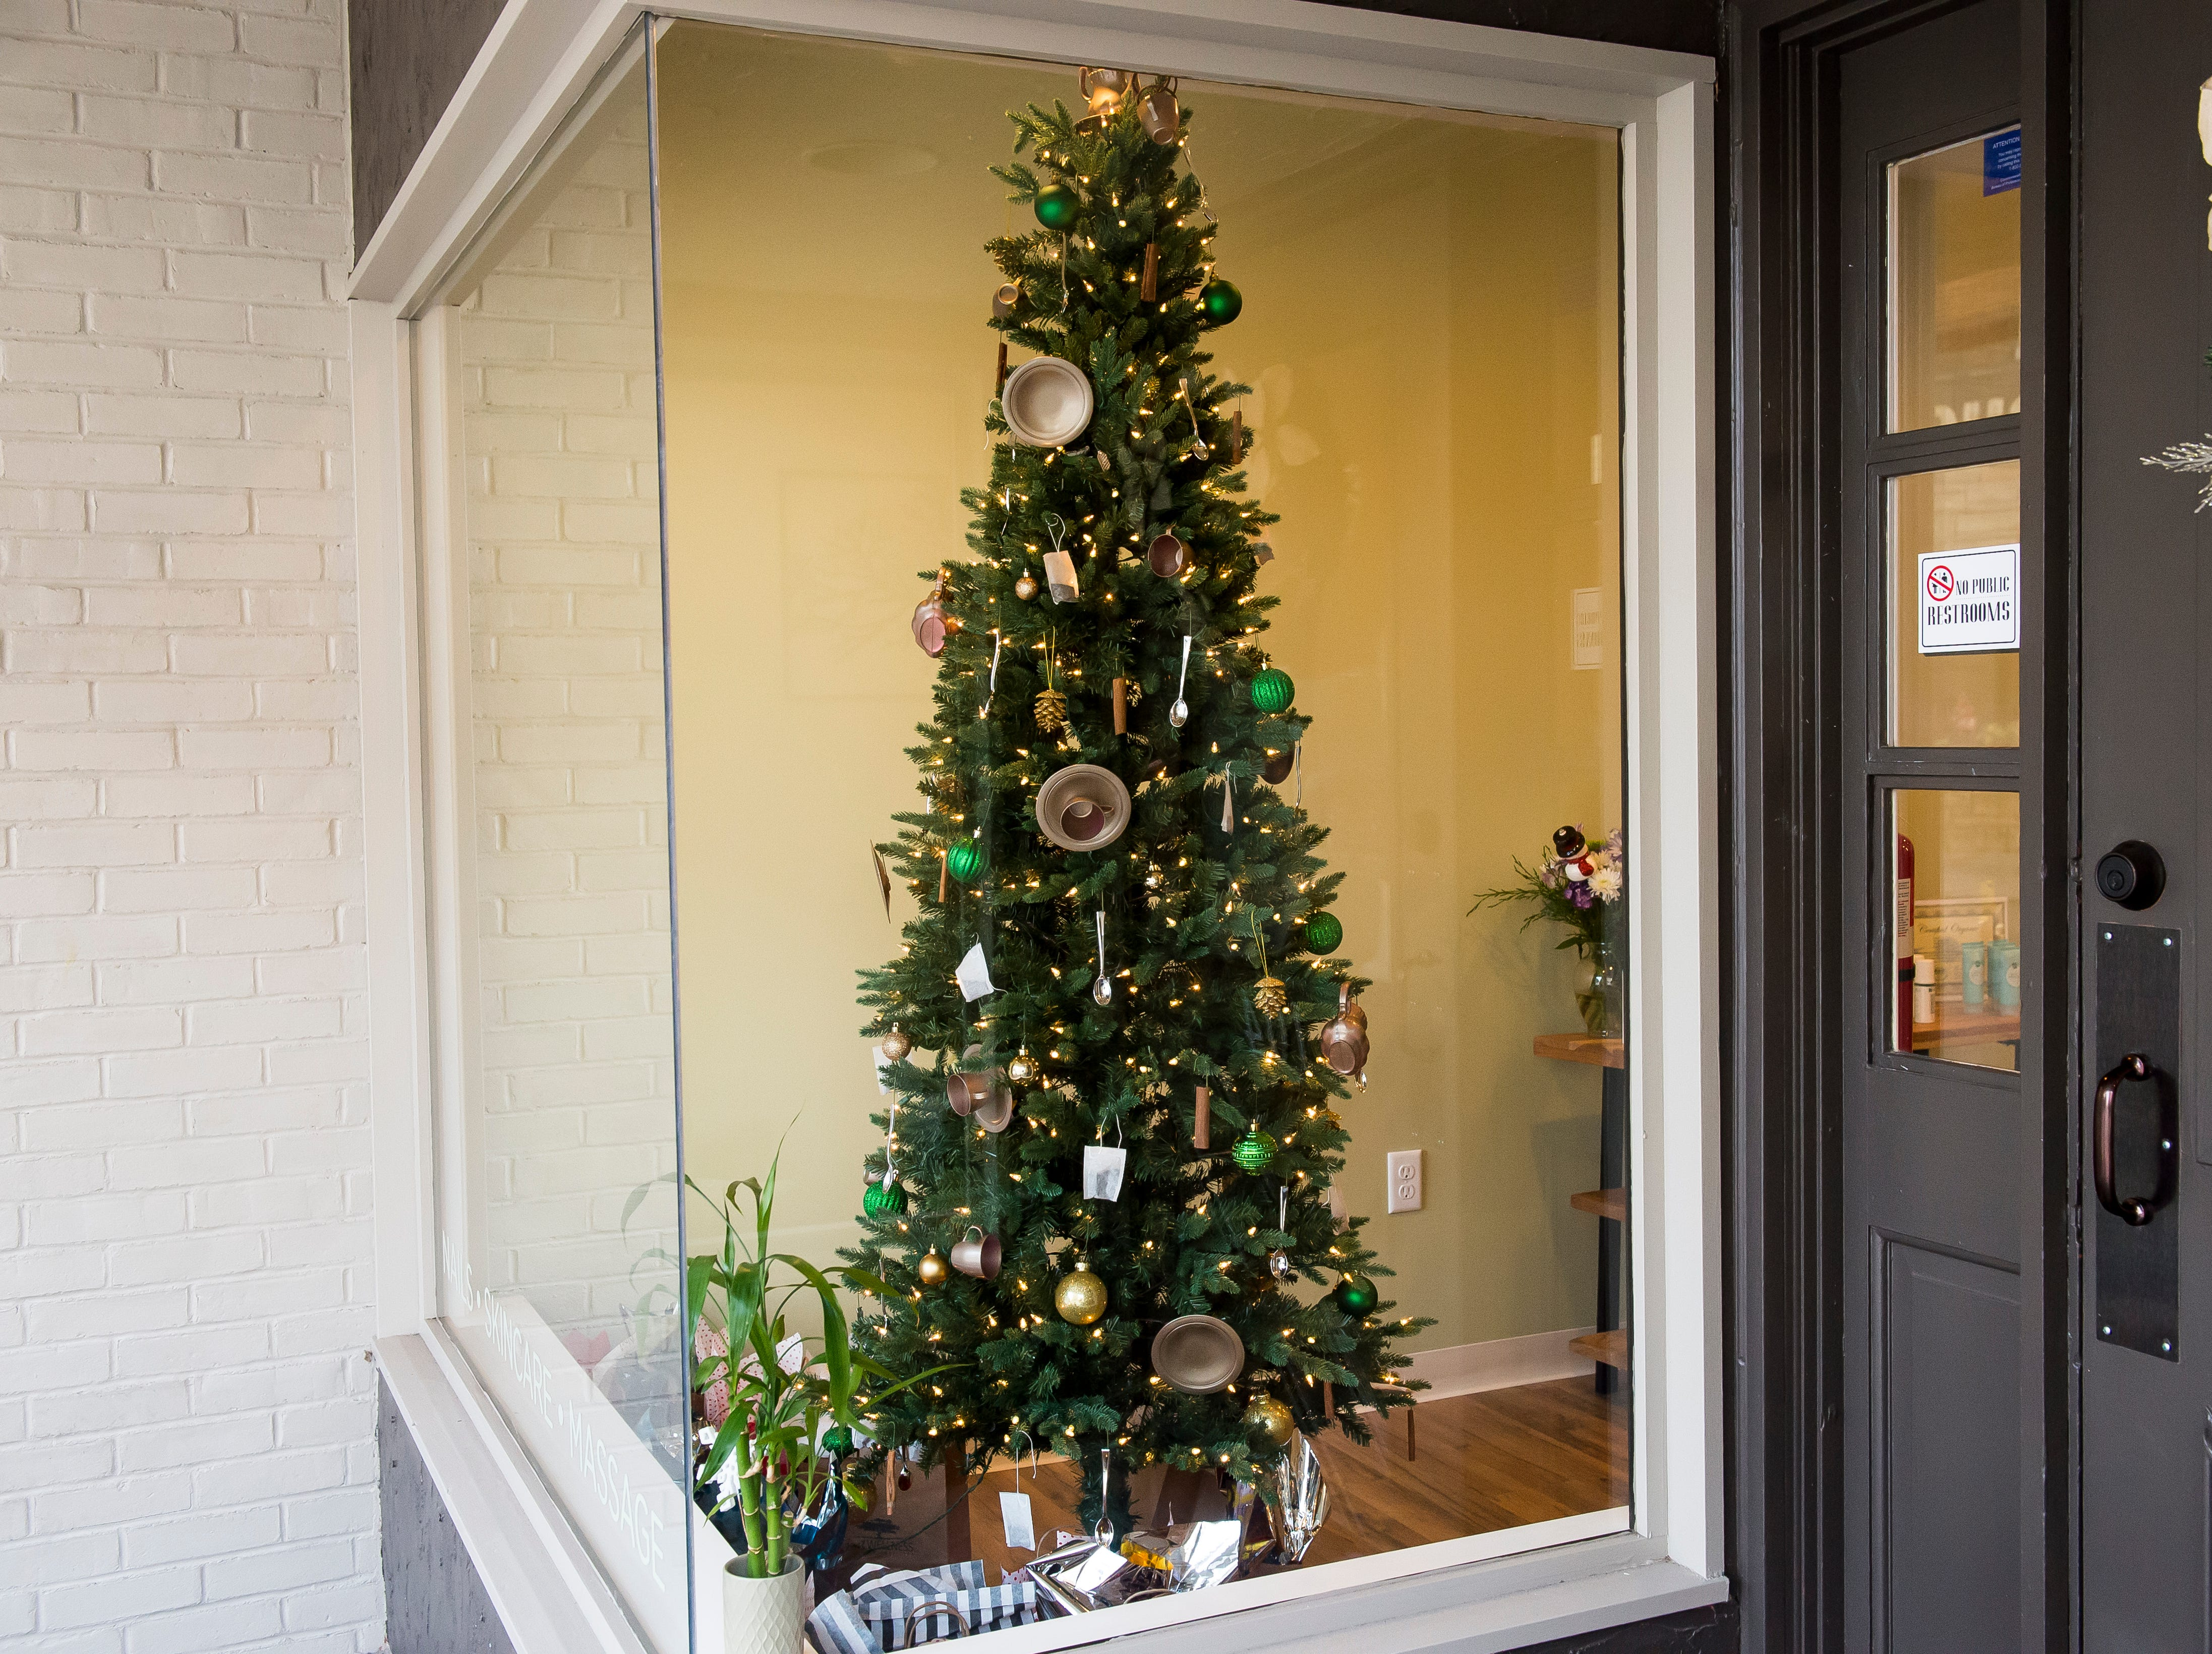 Just Wellness LLC located at 104 Broadway. Visit mainstreethanover.org for details about Christmas Tree Wars.